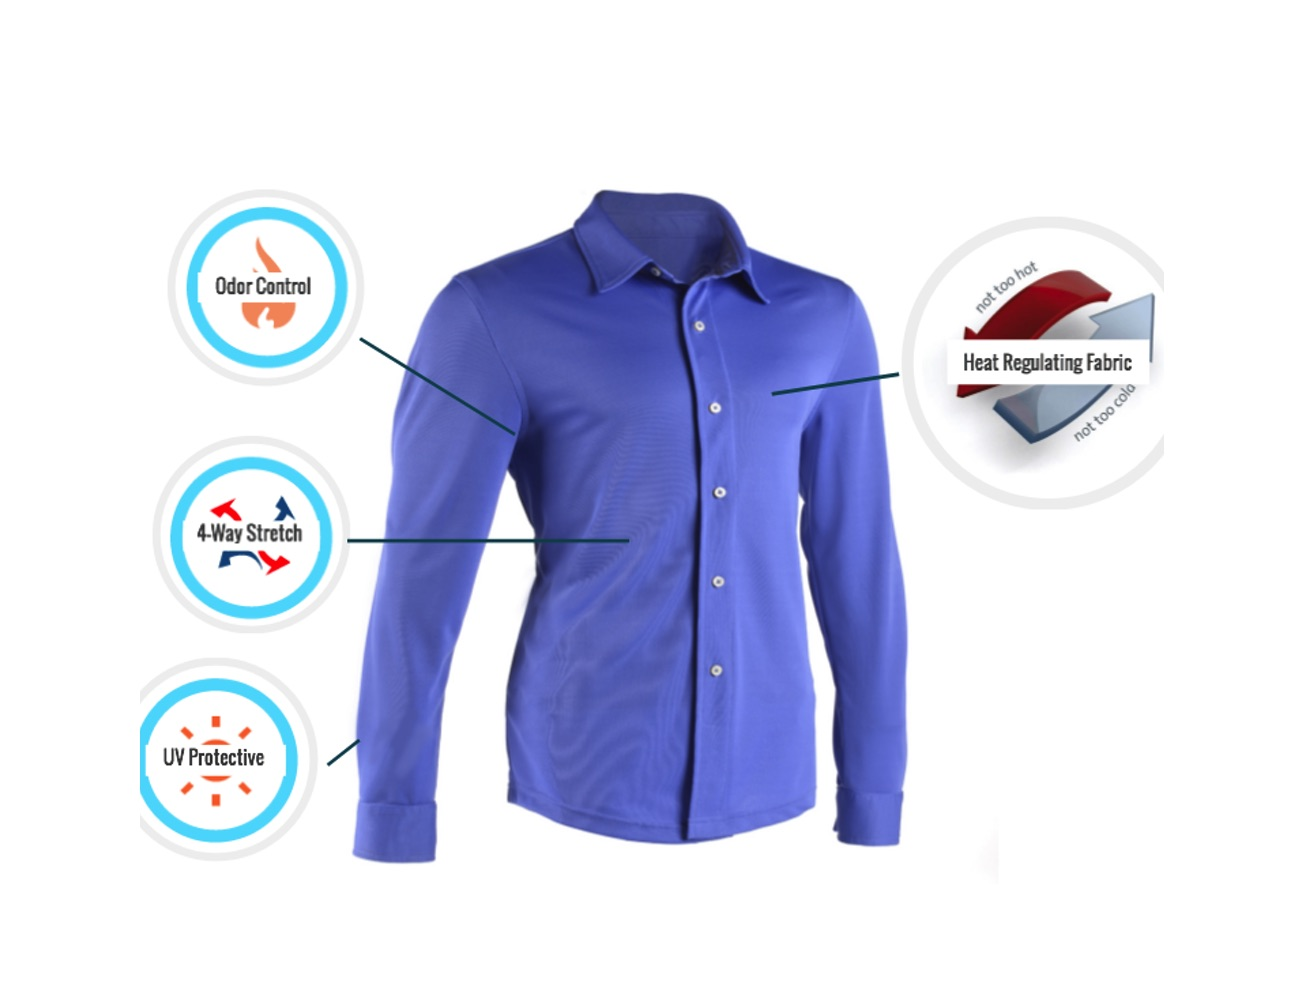 A Dress Shirt With Cooling Technology